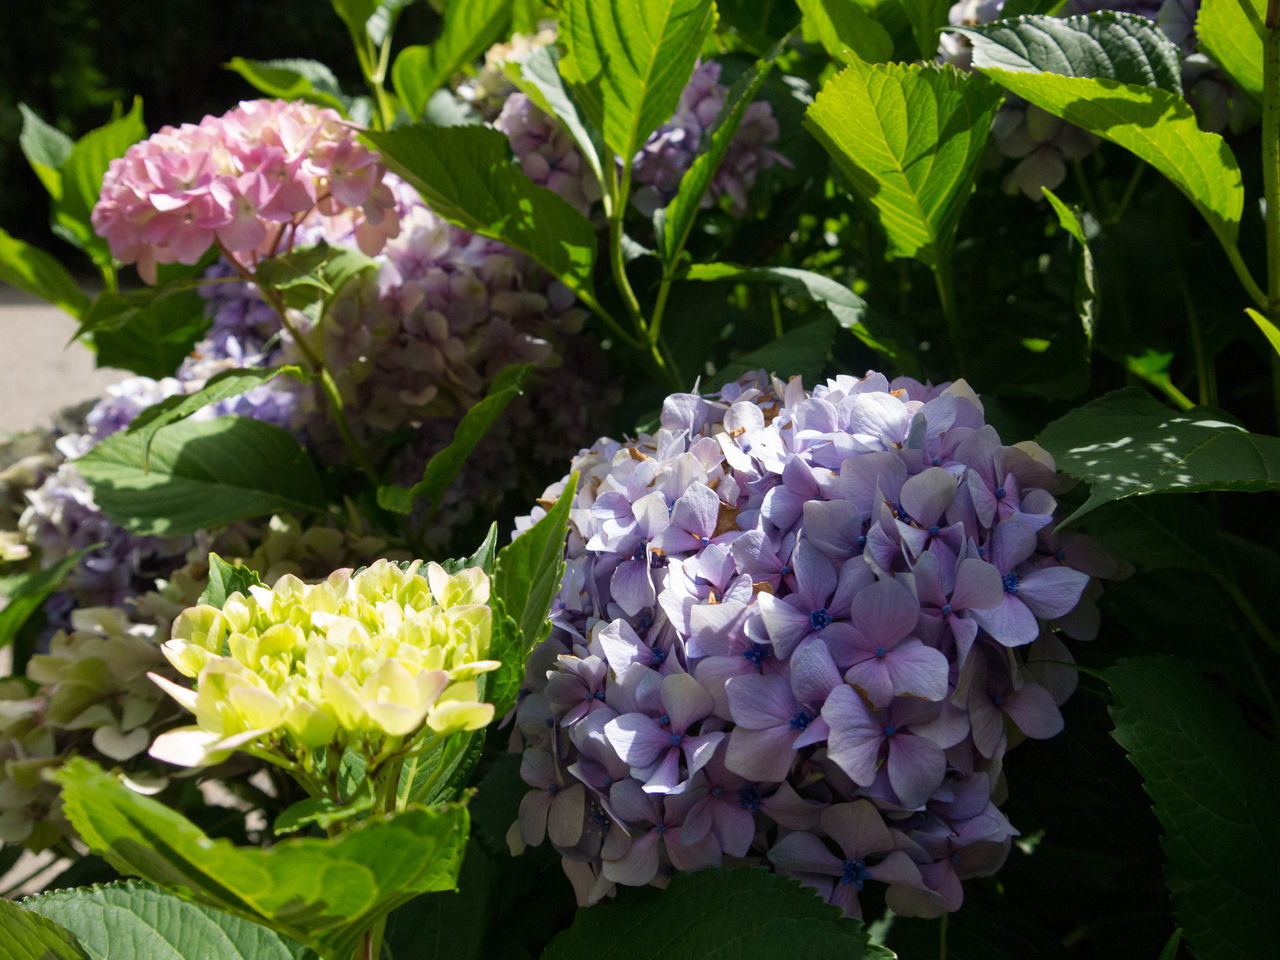 Beauty In Nature Blooming Close-up Day Flower Flower Head Fragility Freshness Green Color Growth Hydrangea Hydrangeas Leaf Nature No People Outdoors Petal Plant Purple